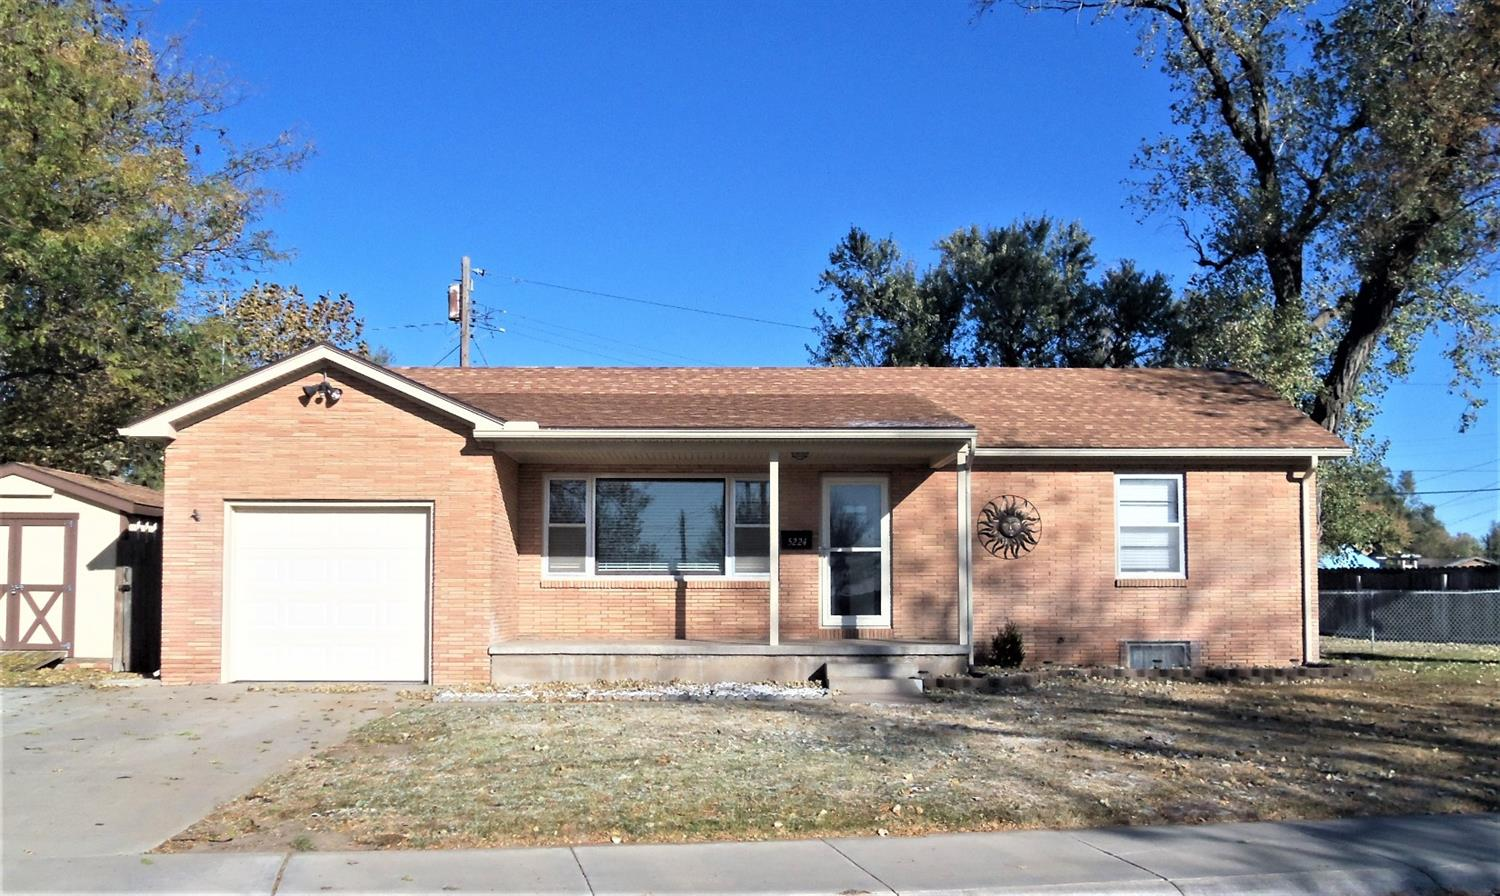 Must see this 4 bedroom & 2 bath brick home in a great neighborhood. It has newer appliances, CH/CA 2019, Water heater 2018, 10' x 14' storage shed with doors on both ends. Call today!